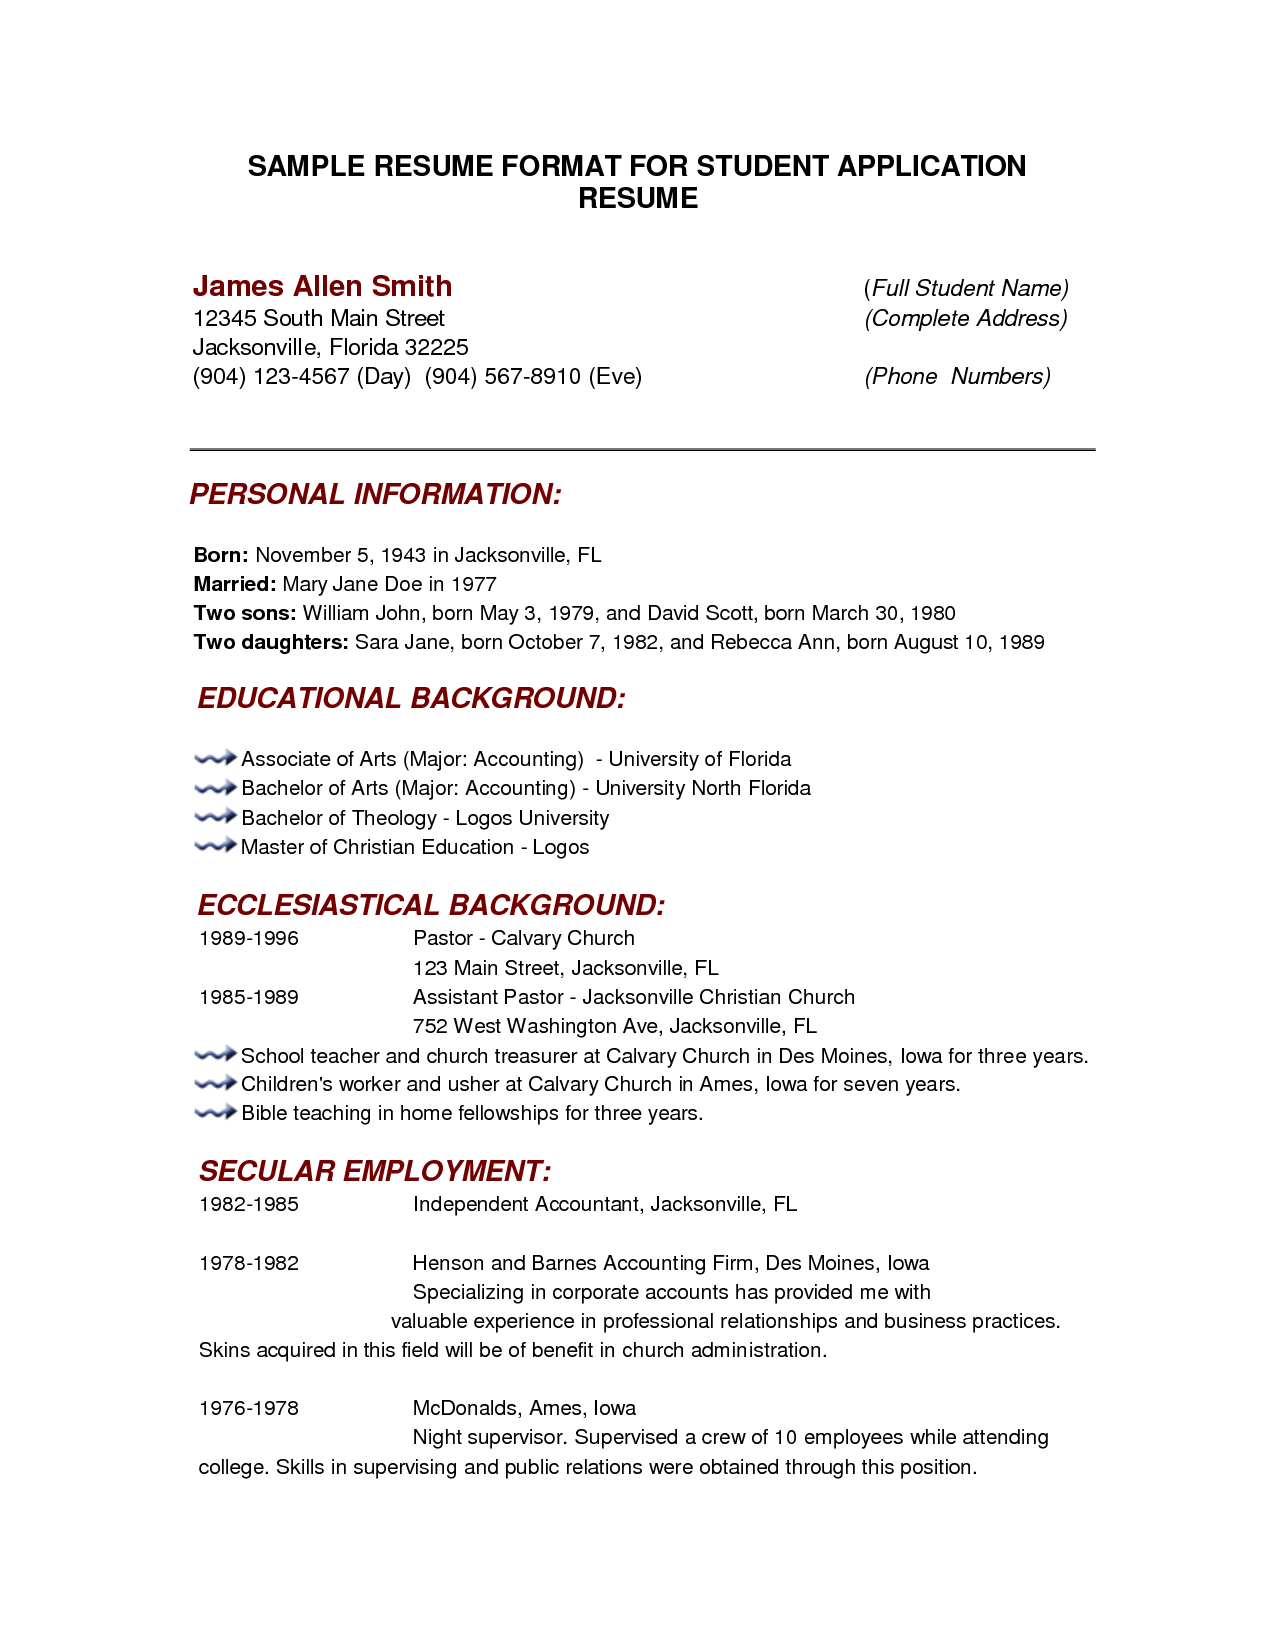 Resume Template For College Student Resume Template For College Students  Httpwwwresumecareer